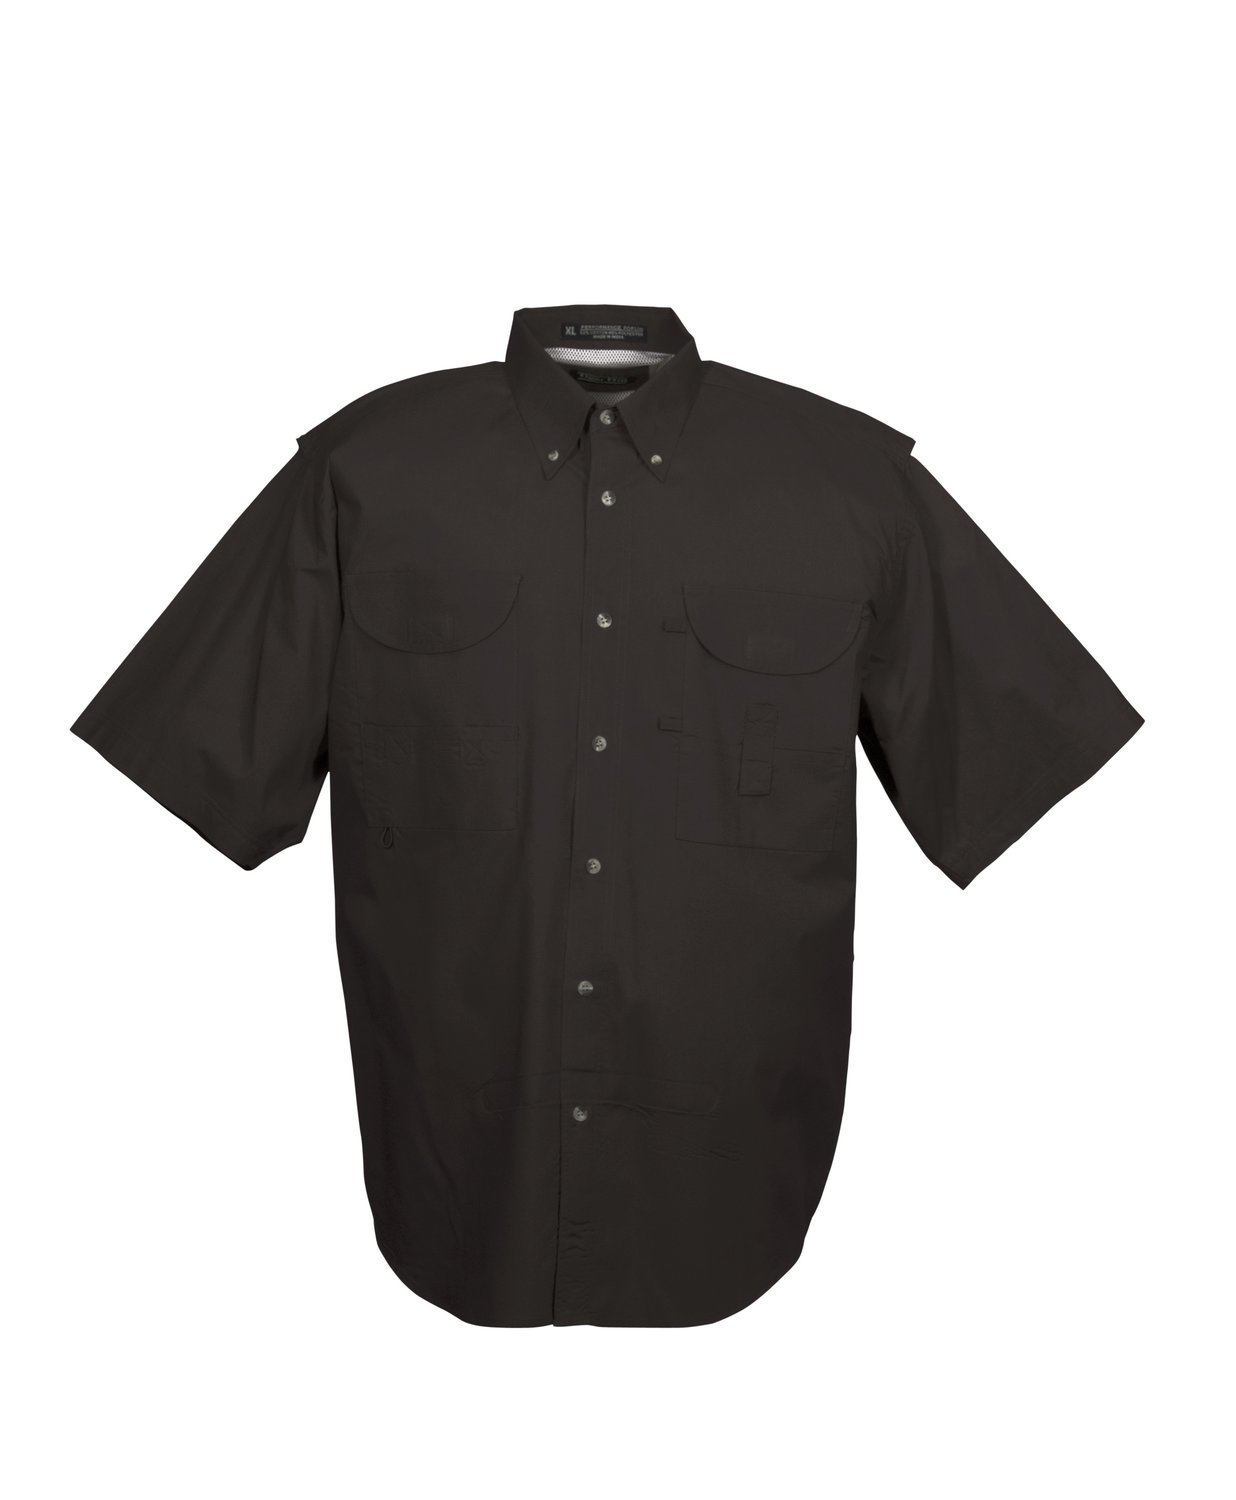 Tiger Hill Men's Fishing Shirt Short Sleeves Black